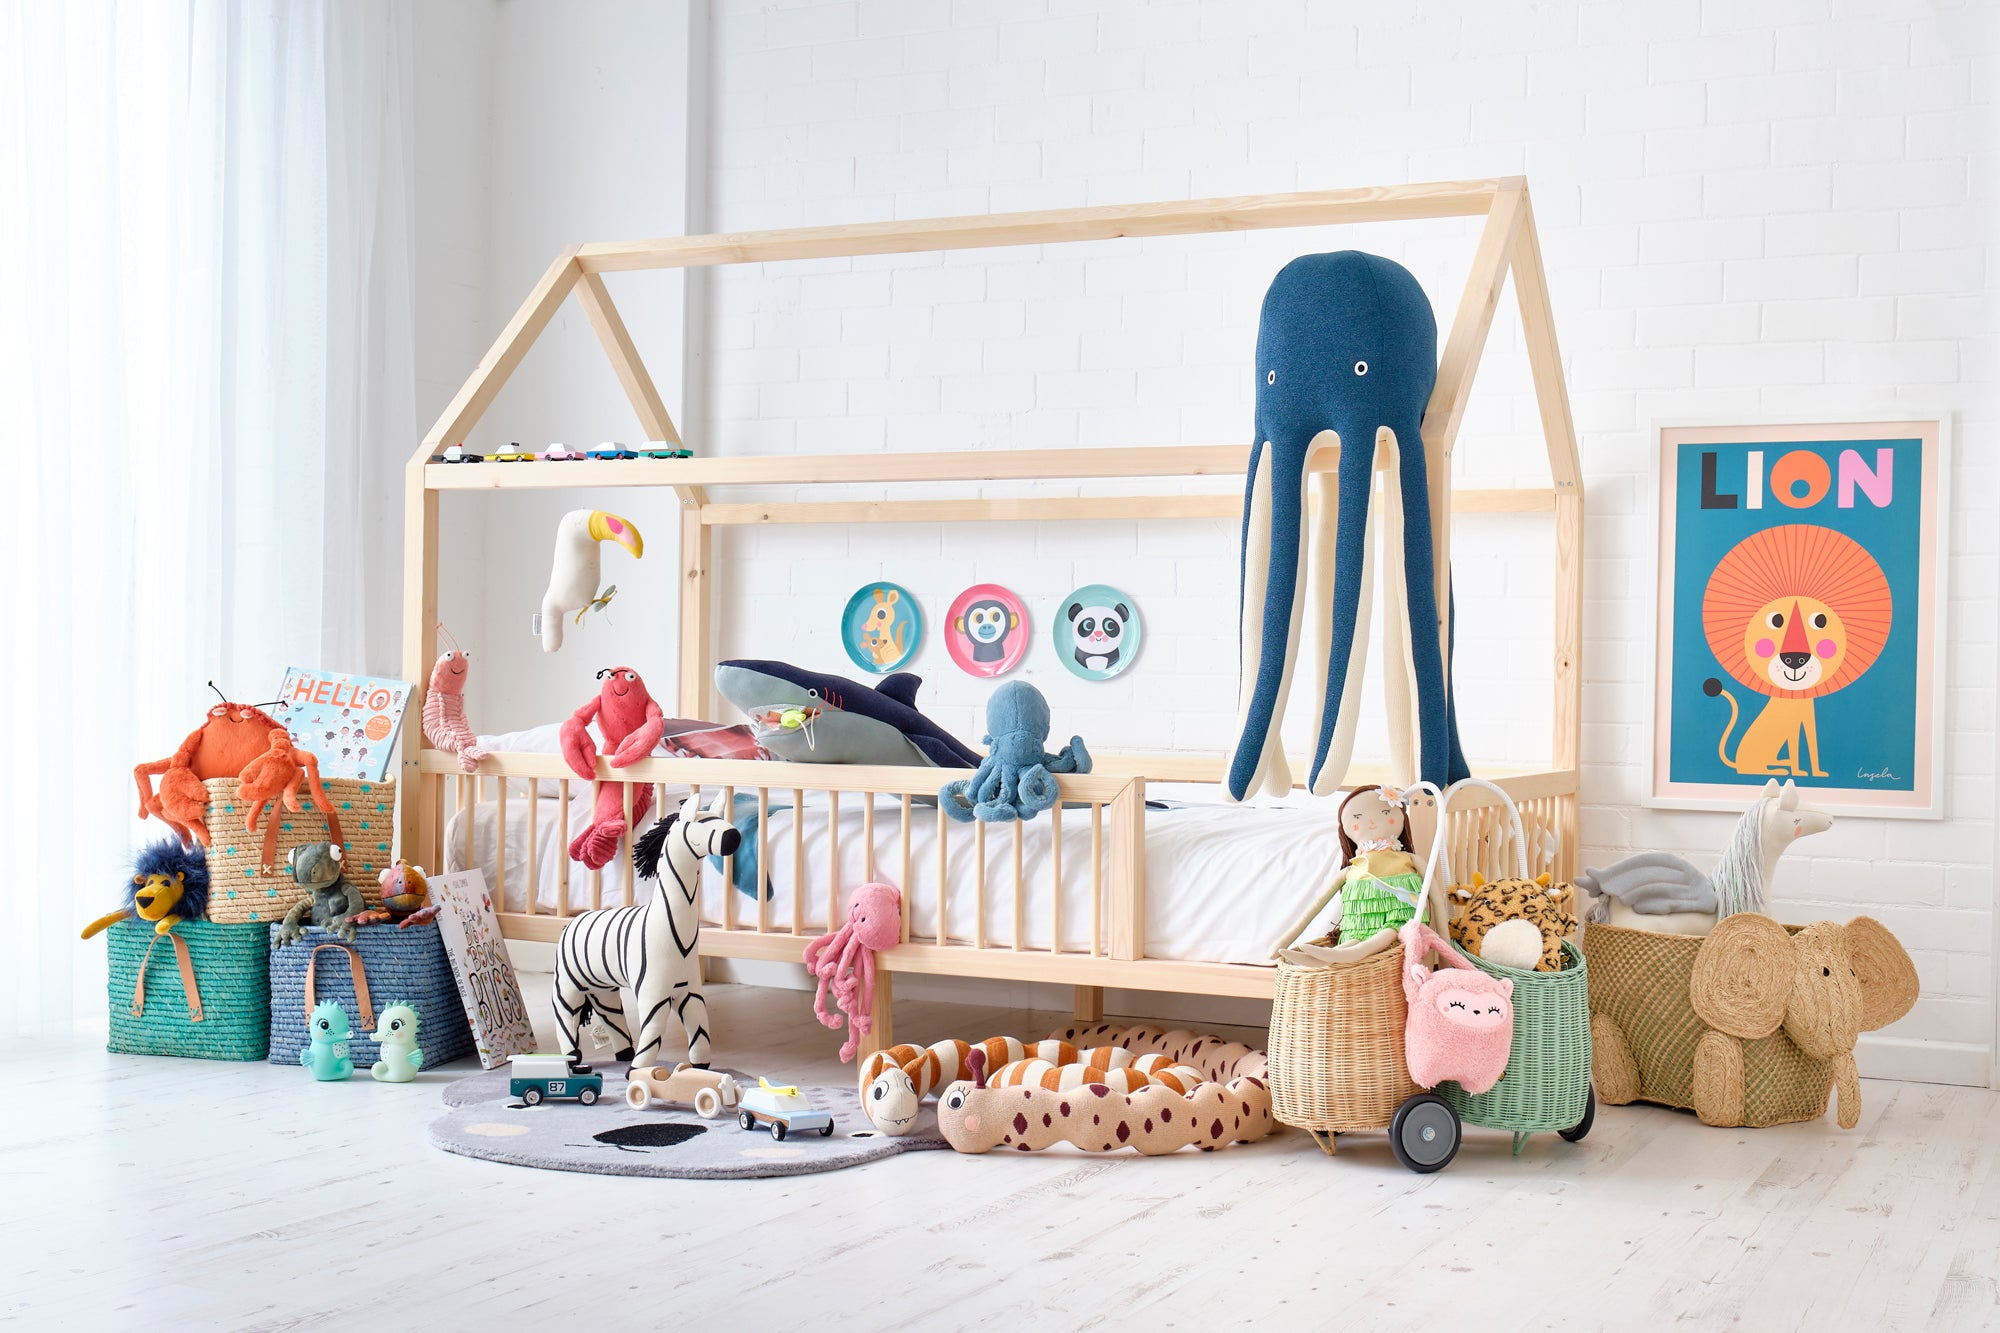 Treasure Island Children's Bedroom by Bobby Rabbit, to be featured in Our Royal Baby.